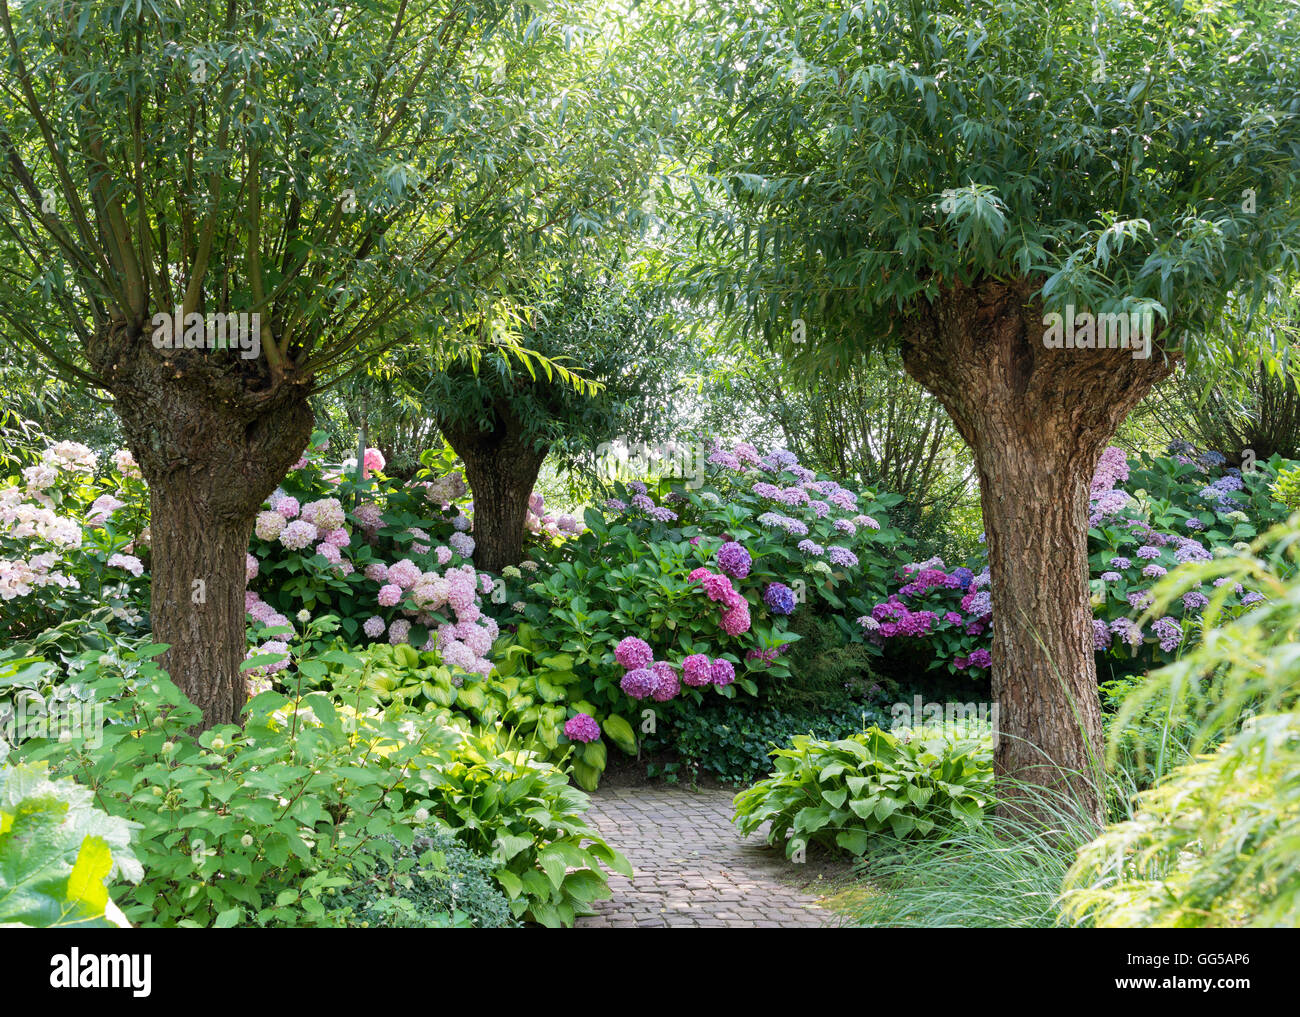 Violet willow stock photos violet willow stock images alamy garden with green willow trees and pink and purple hydrange hortensia flowers in july stock mightylinksfo